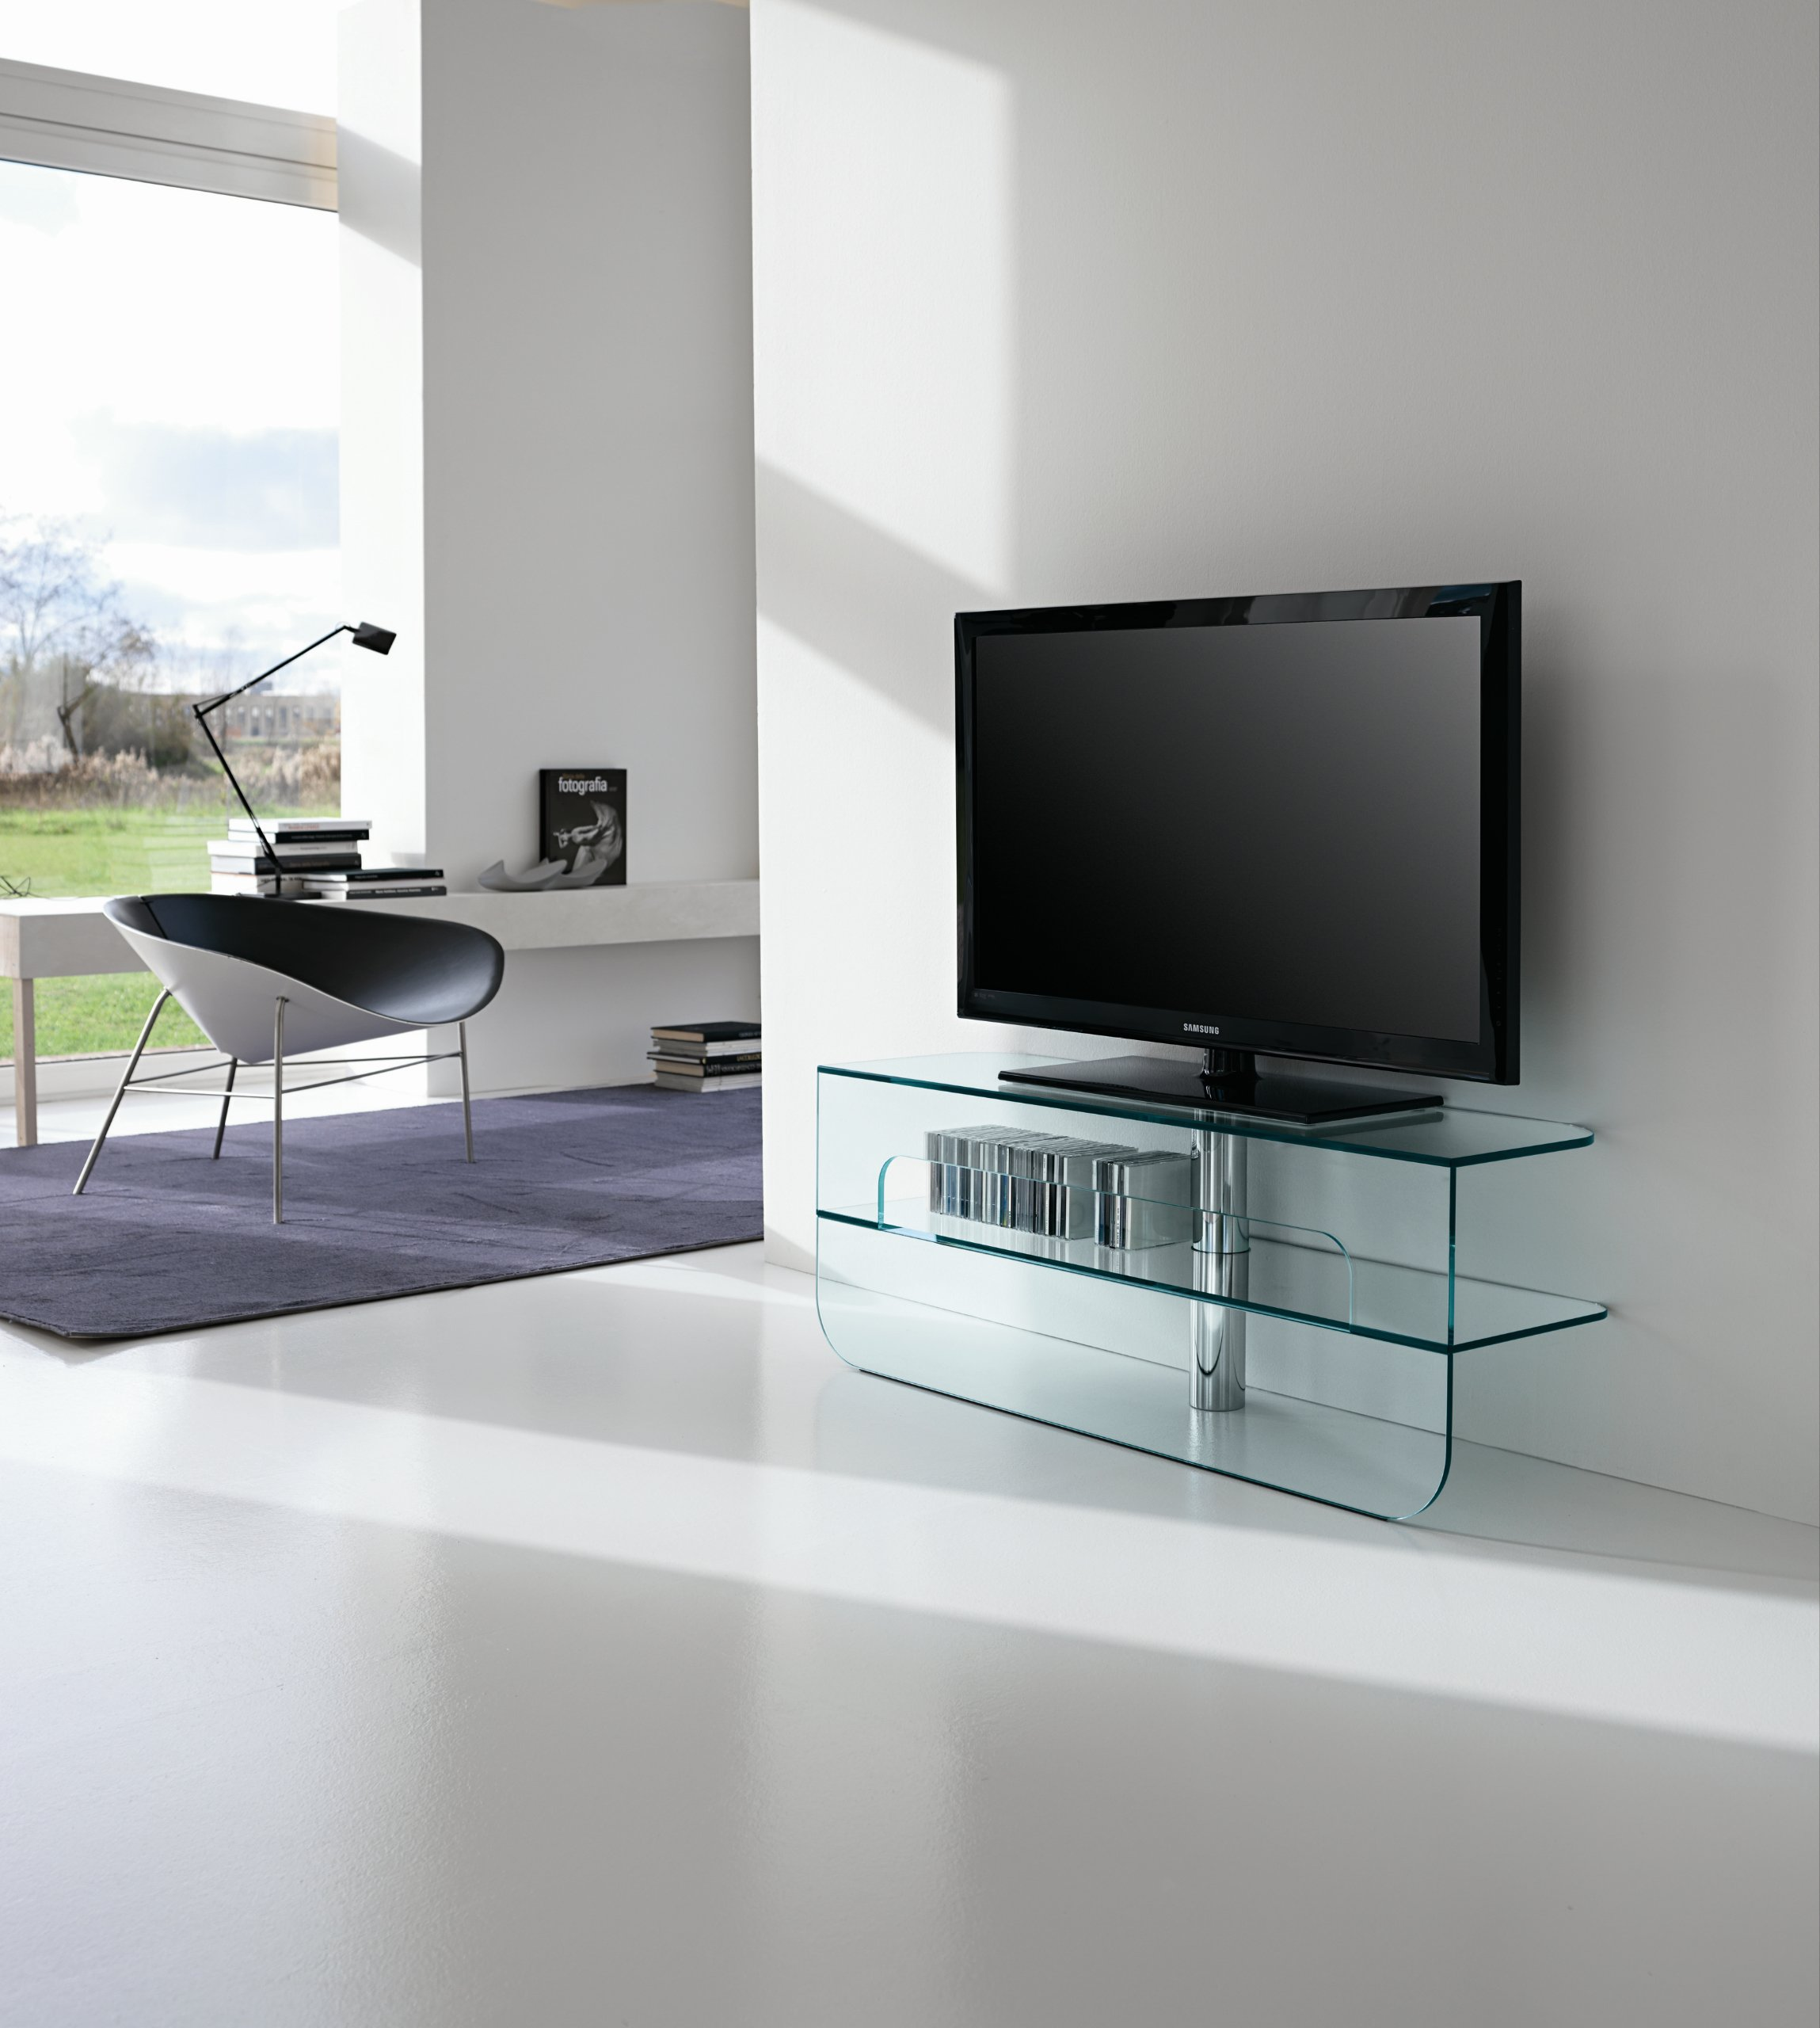 mobile tv basso in vetro plasmatik by t d tonelli design design karim rashid. Black Bedroom Furniture Sets. Home Design Ideas